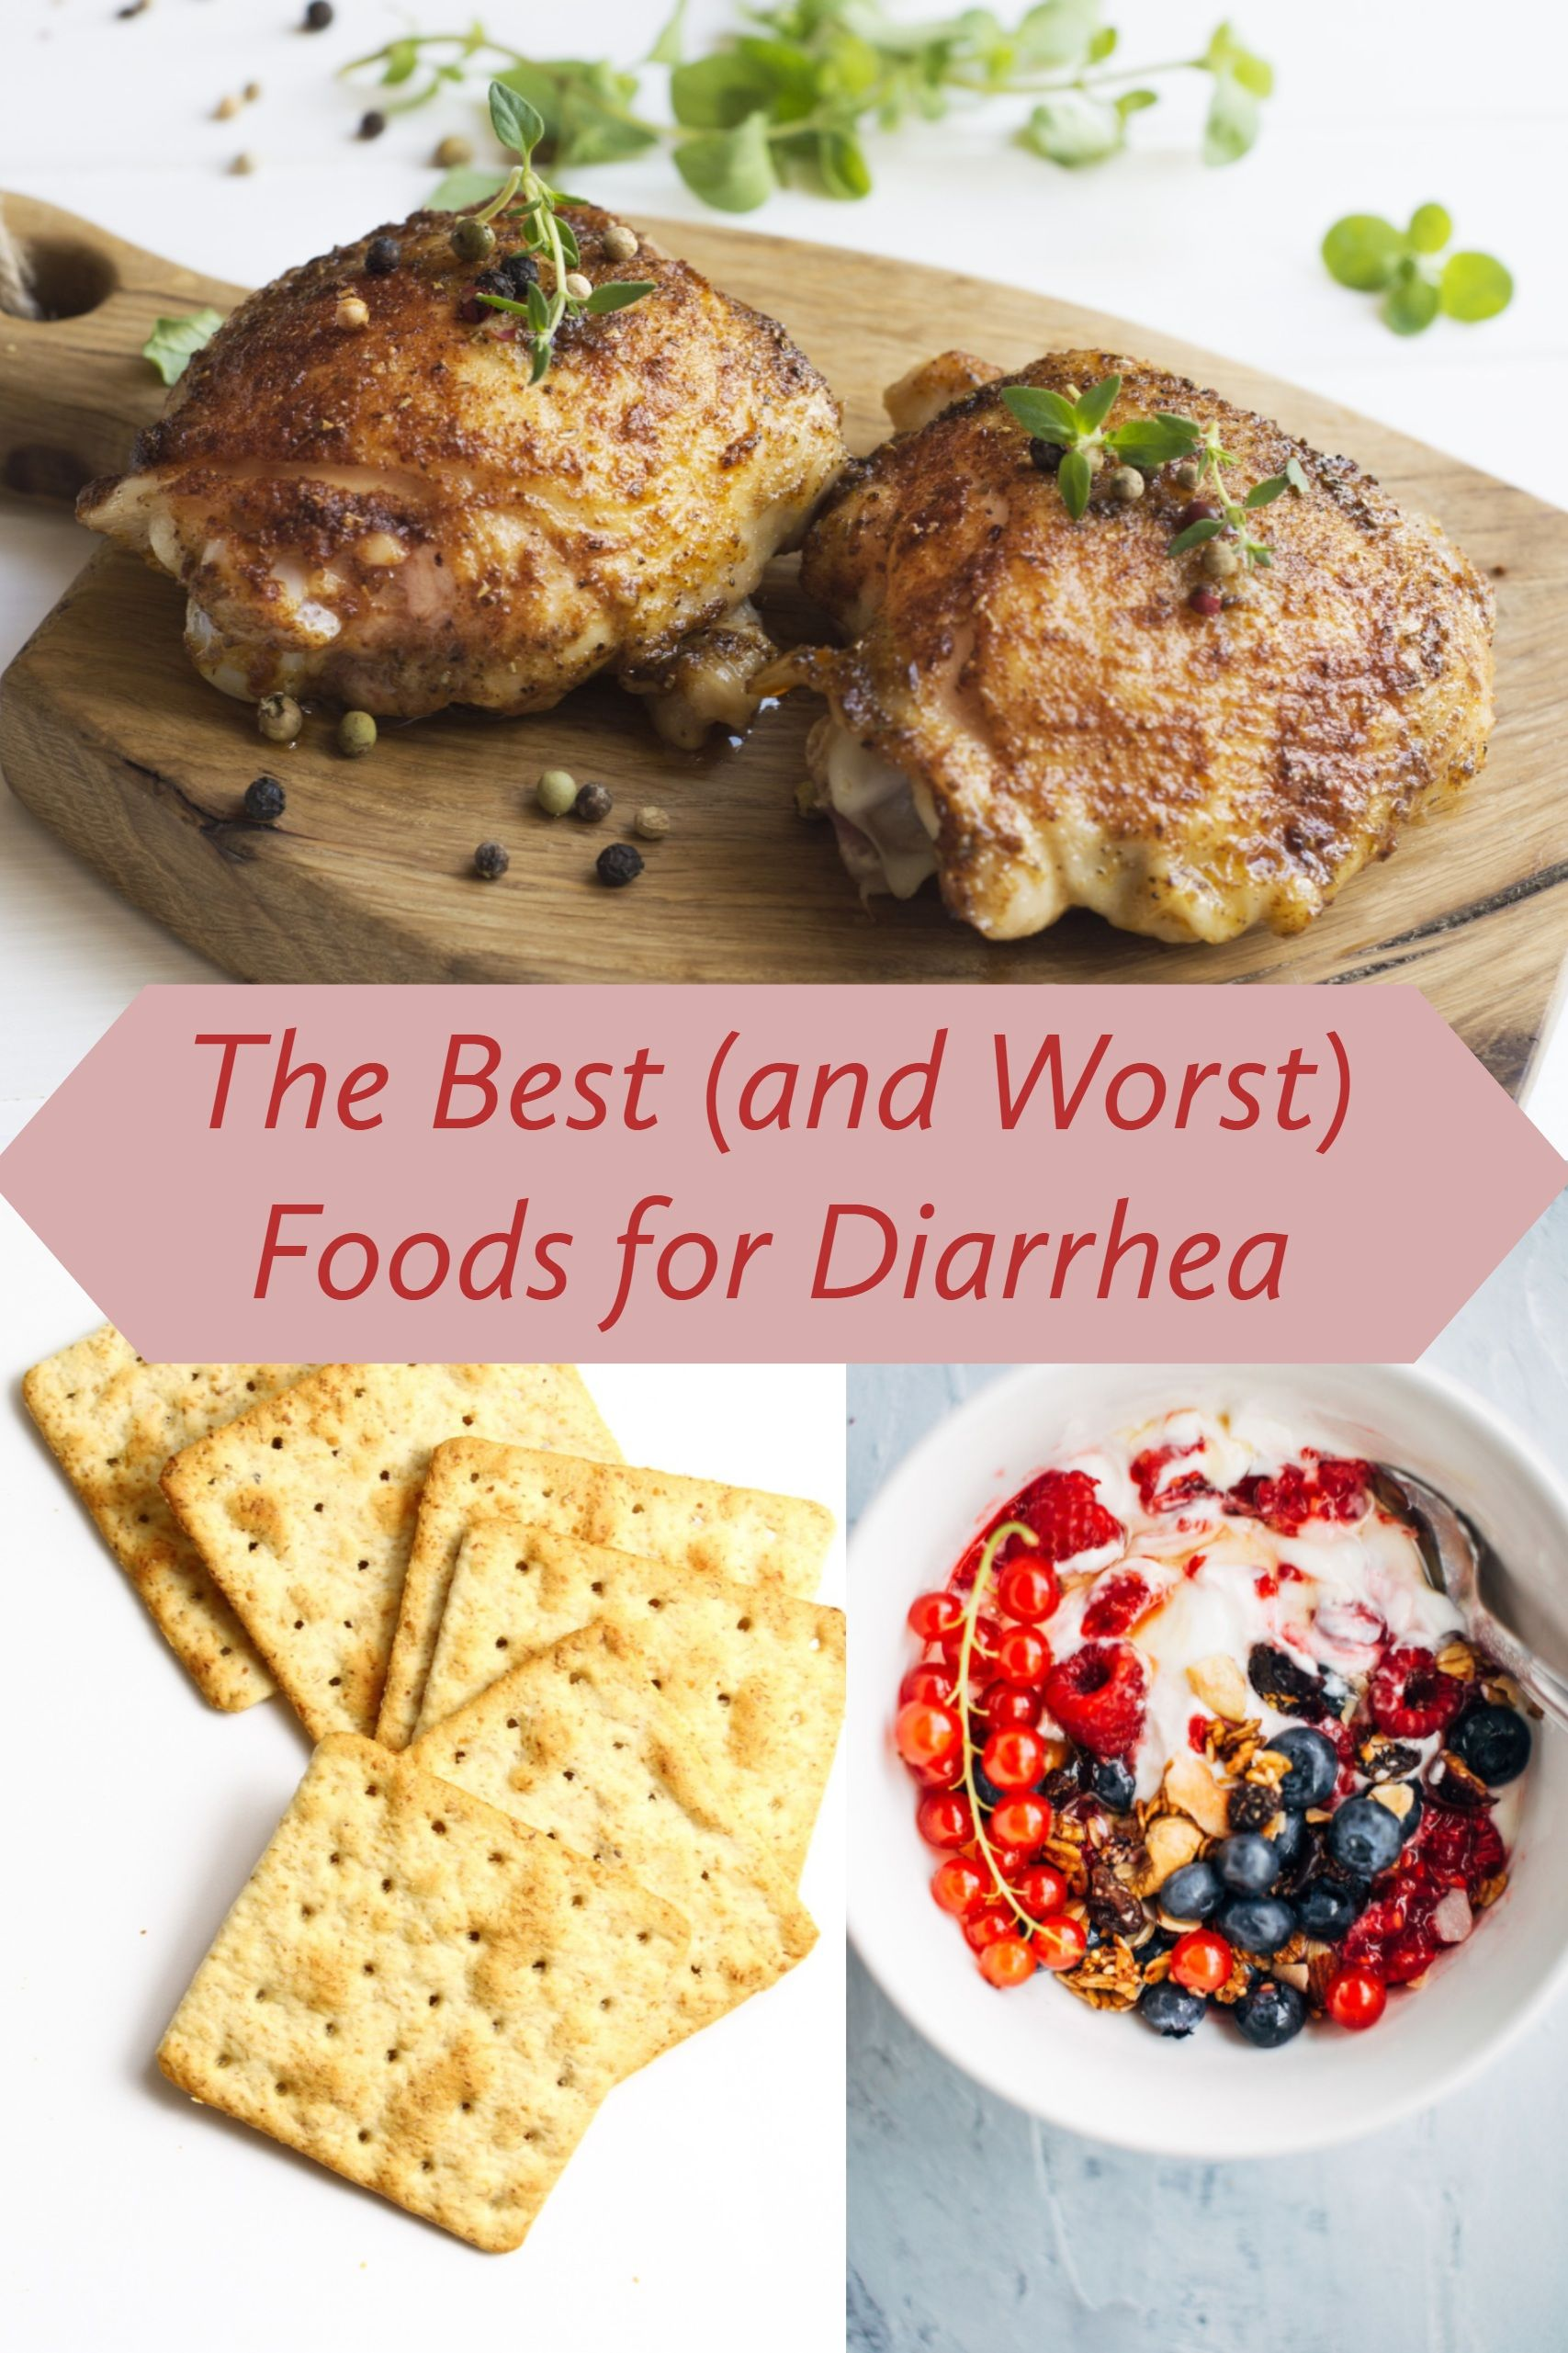 Some foods can make diarrhea worse, and others can keep